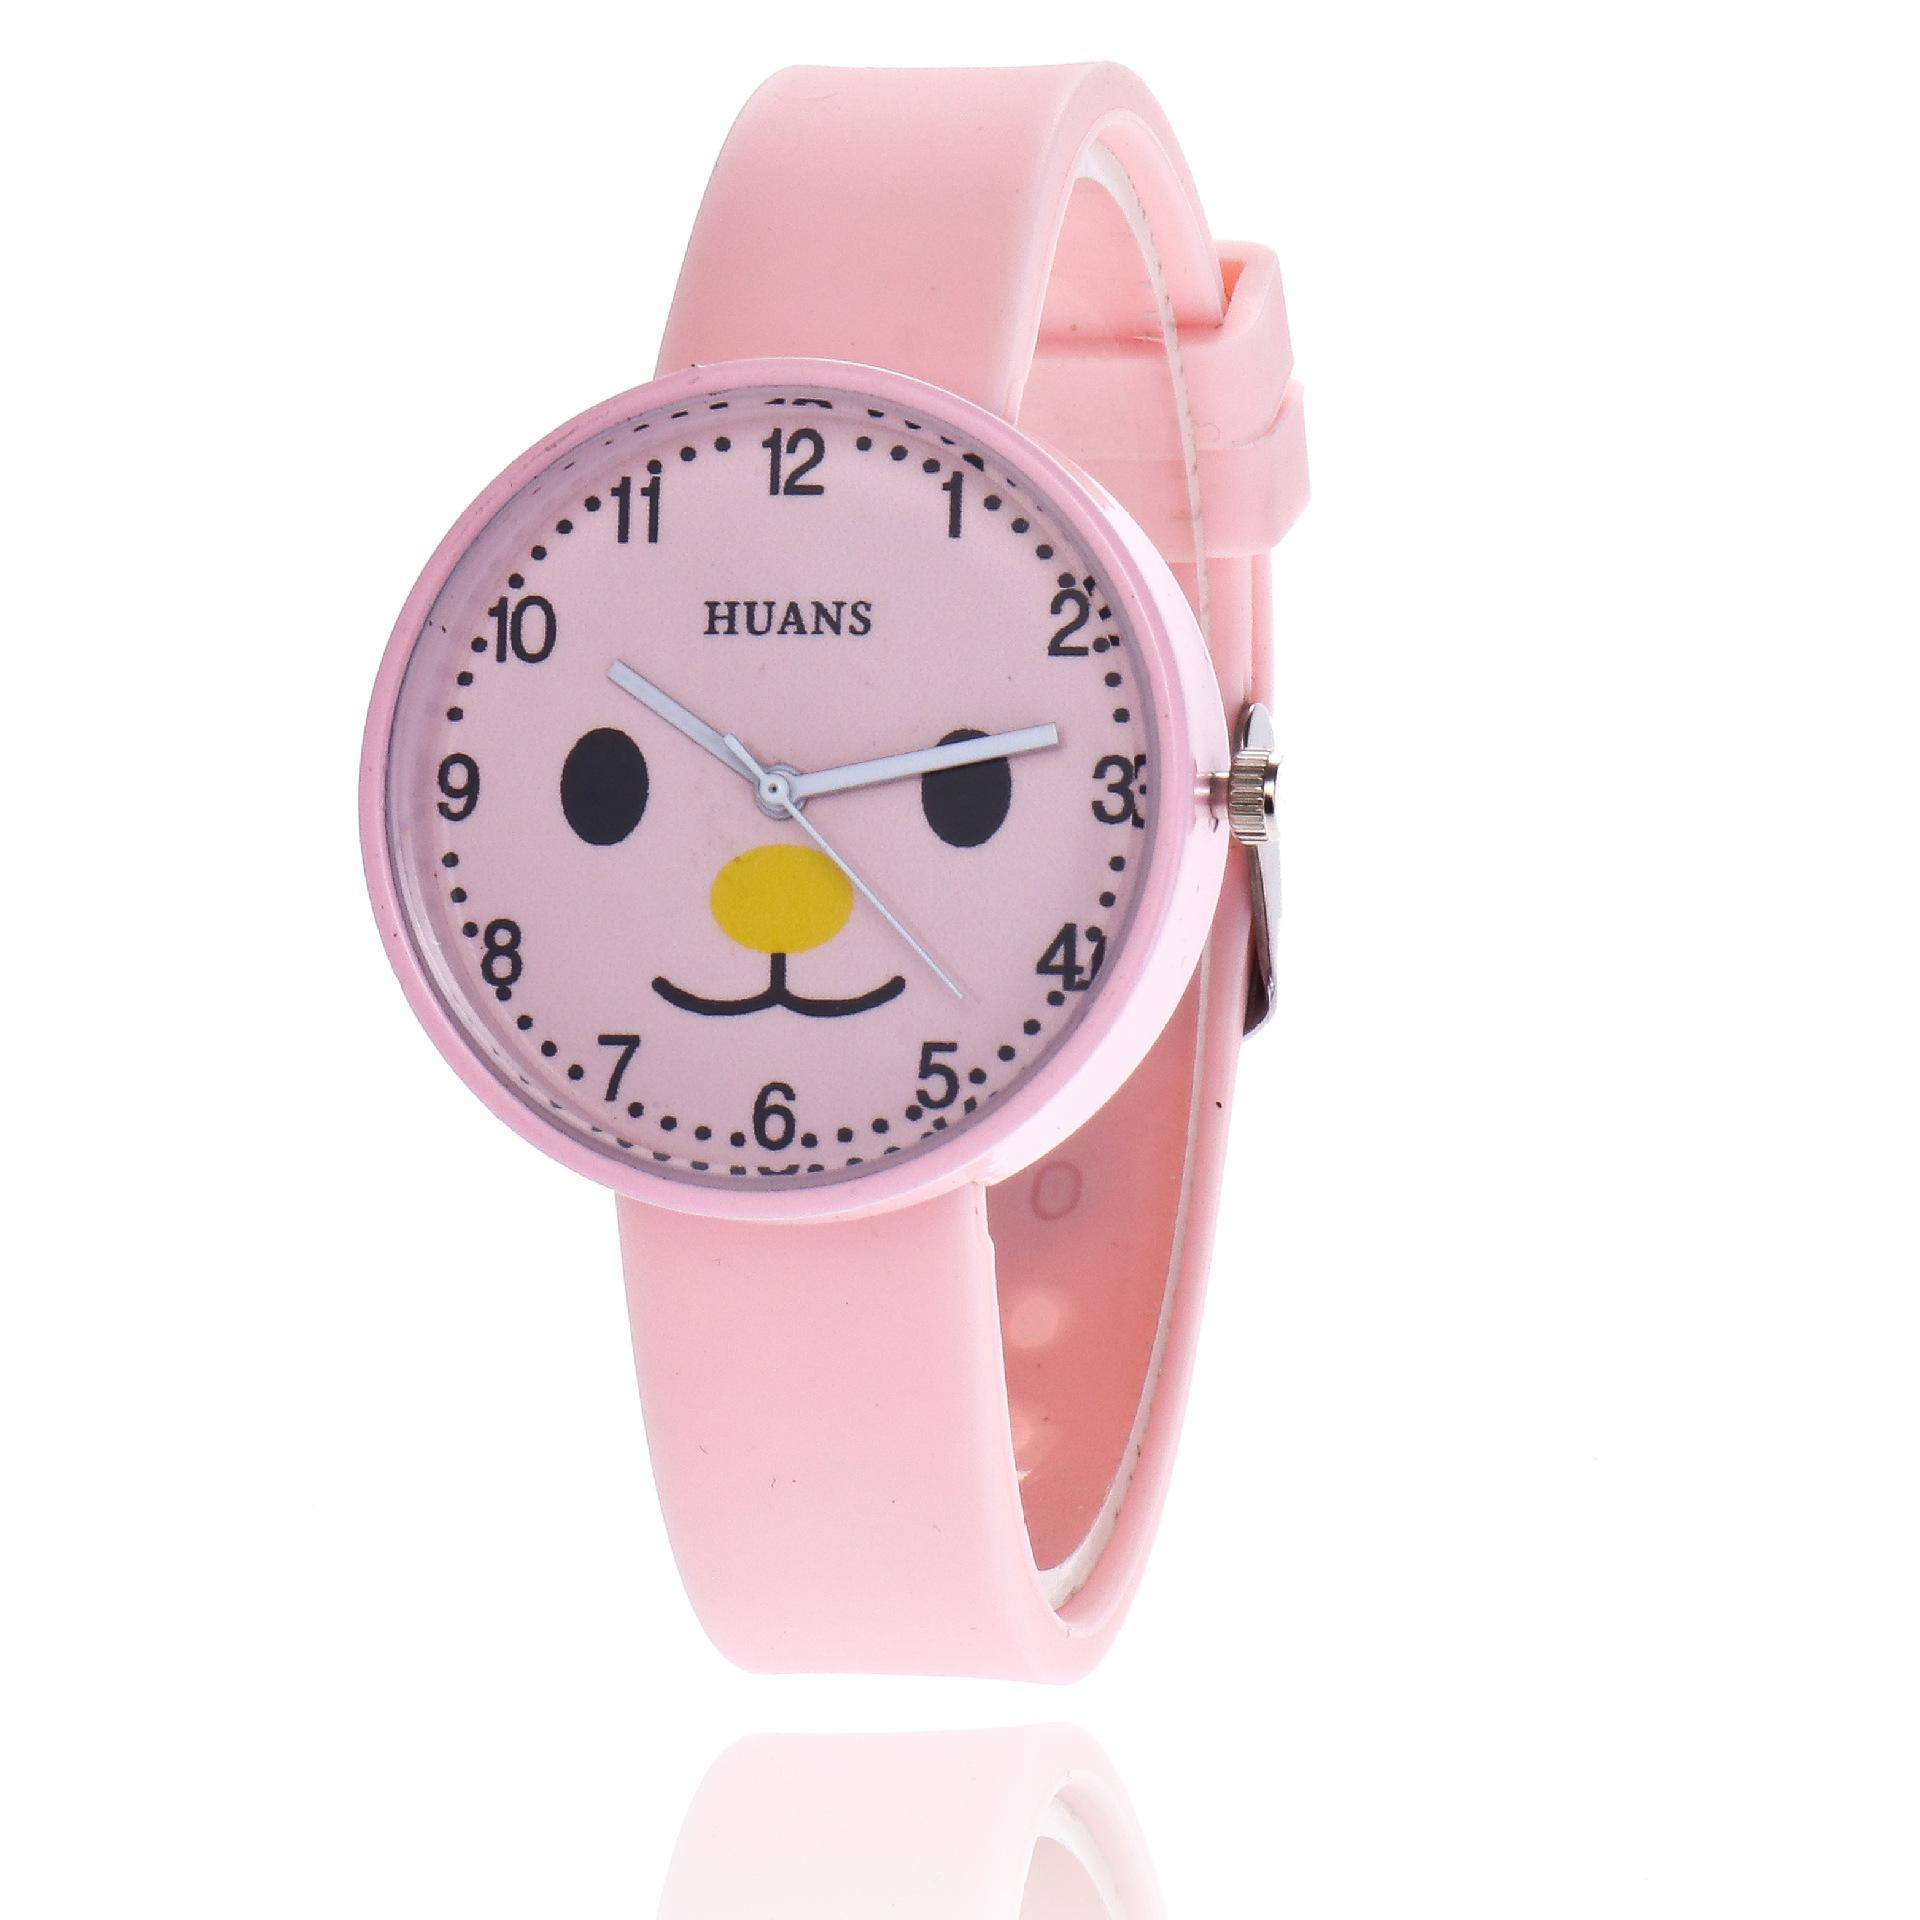 9cc43a6f0 Lovely Cute Cat Watches Women Girls Wristwatch Jelly Color Silicone  Bracelet Watch For Women Quartz Watch Cartoon Buy Cheap Watches Online Buy  Cheap Watches ...